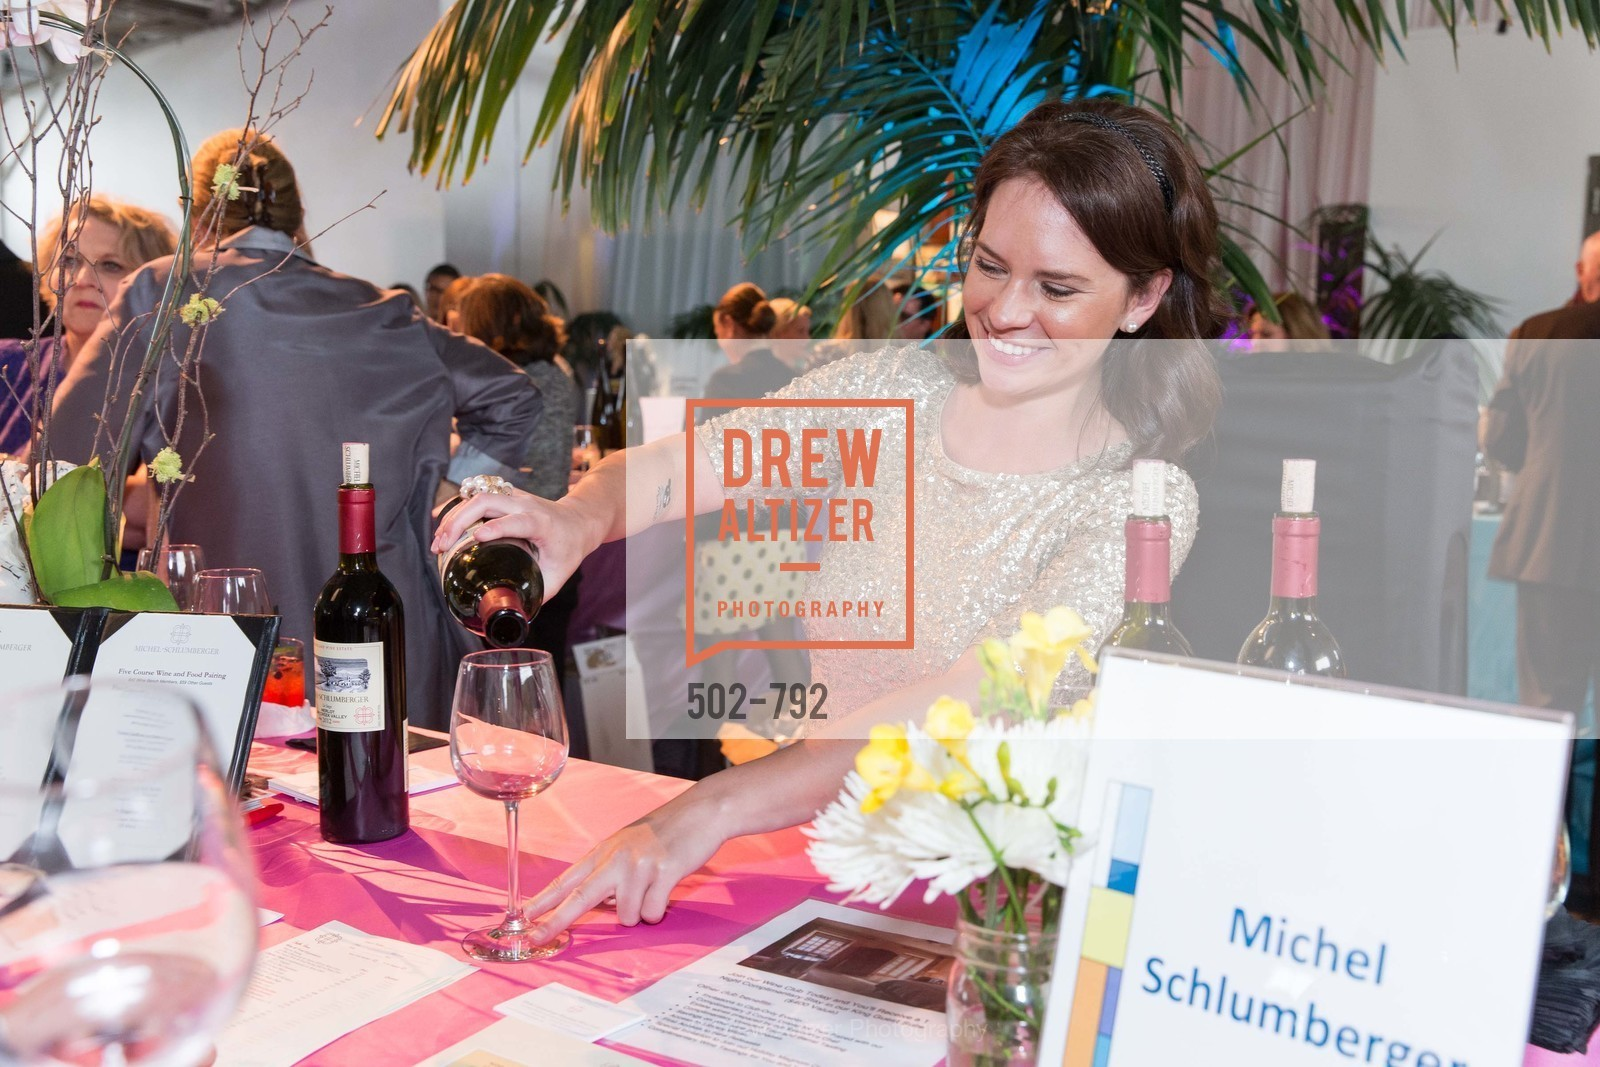 Michel Schlumberger, MEALS ON WHEELS OF SAN FRANCISCO'S 28th Annual Star Chefs and Vintners Gala, US, April 20th, 2015,Drew Altizer, Drew Altizer Photography, full-service agency, private events, San Francisco photographer, photographer california